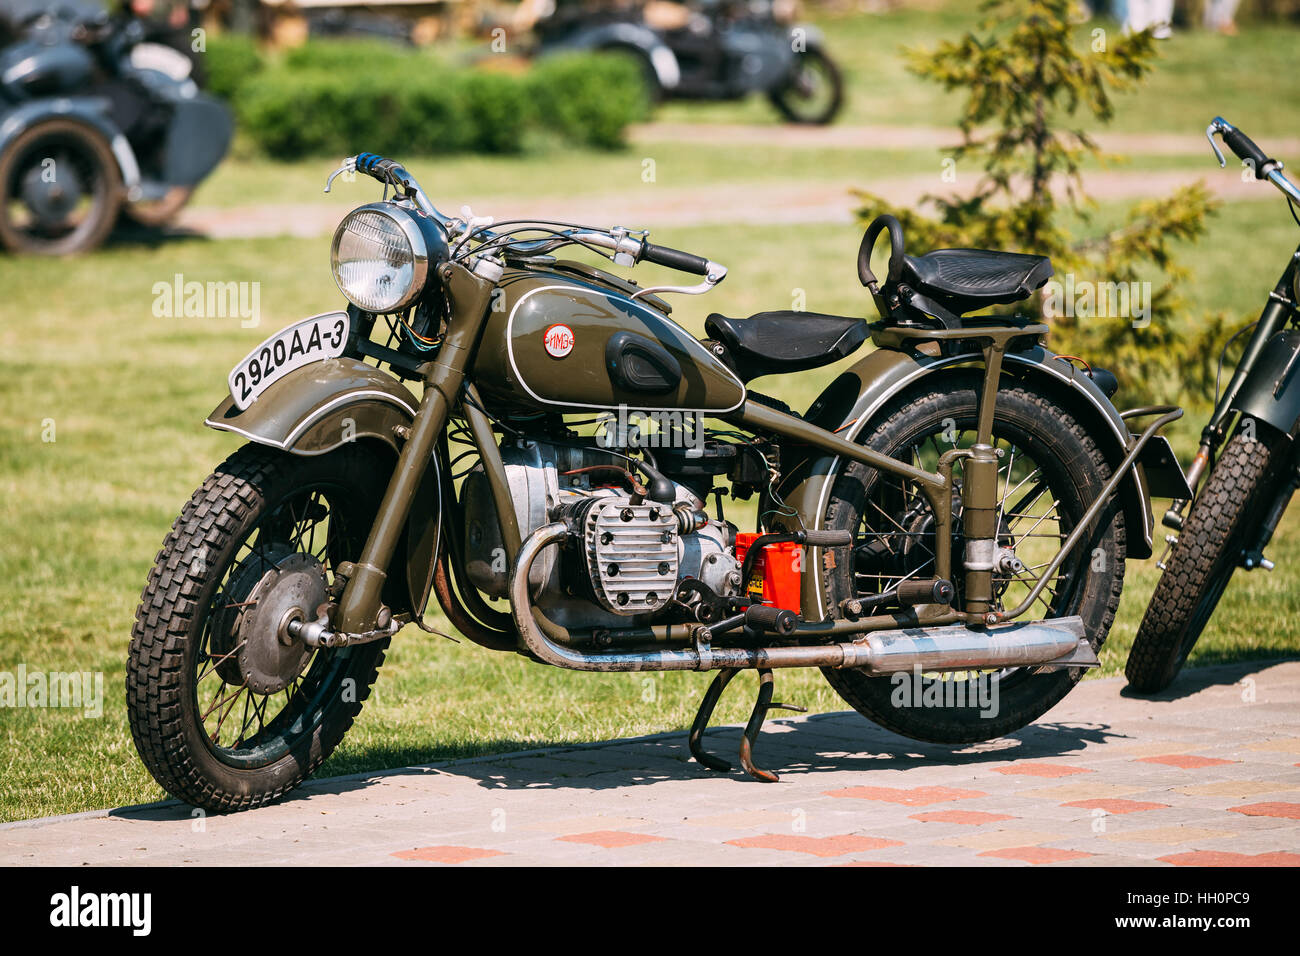 Gomel, Belarus - May 9, 2016: IMZ M-52 Ural, The Old Rarity Soviet Two-Wheeled Khaki Motorcycle, Standing On The - Stock Image